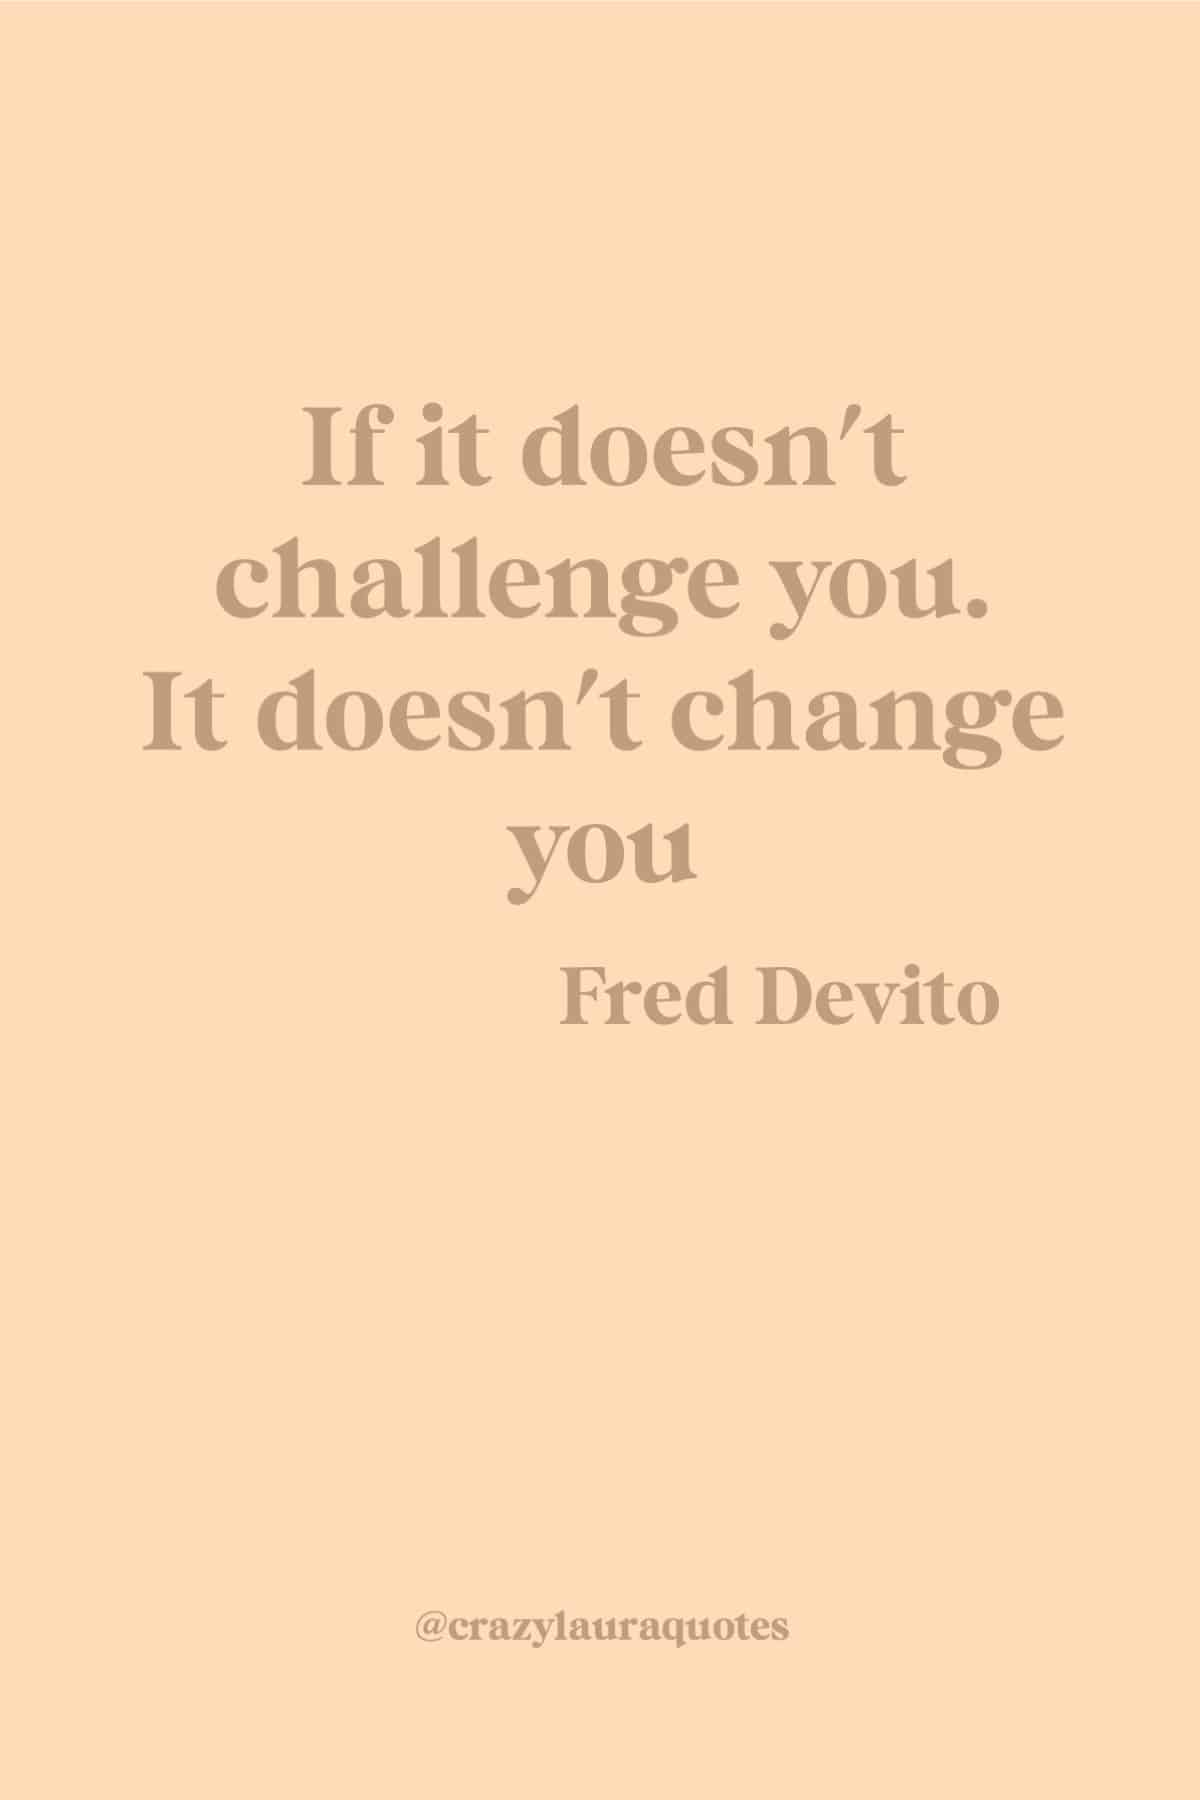 fred devito quote about challenge